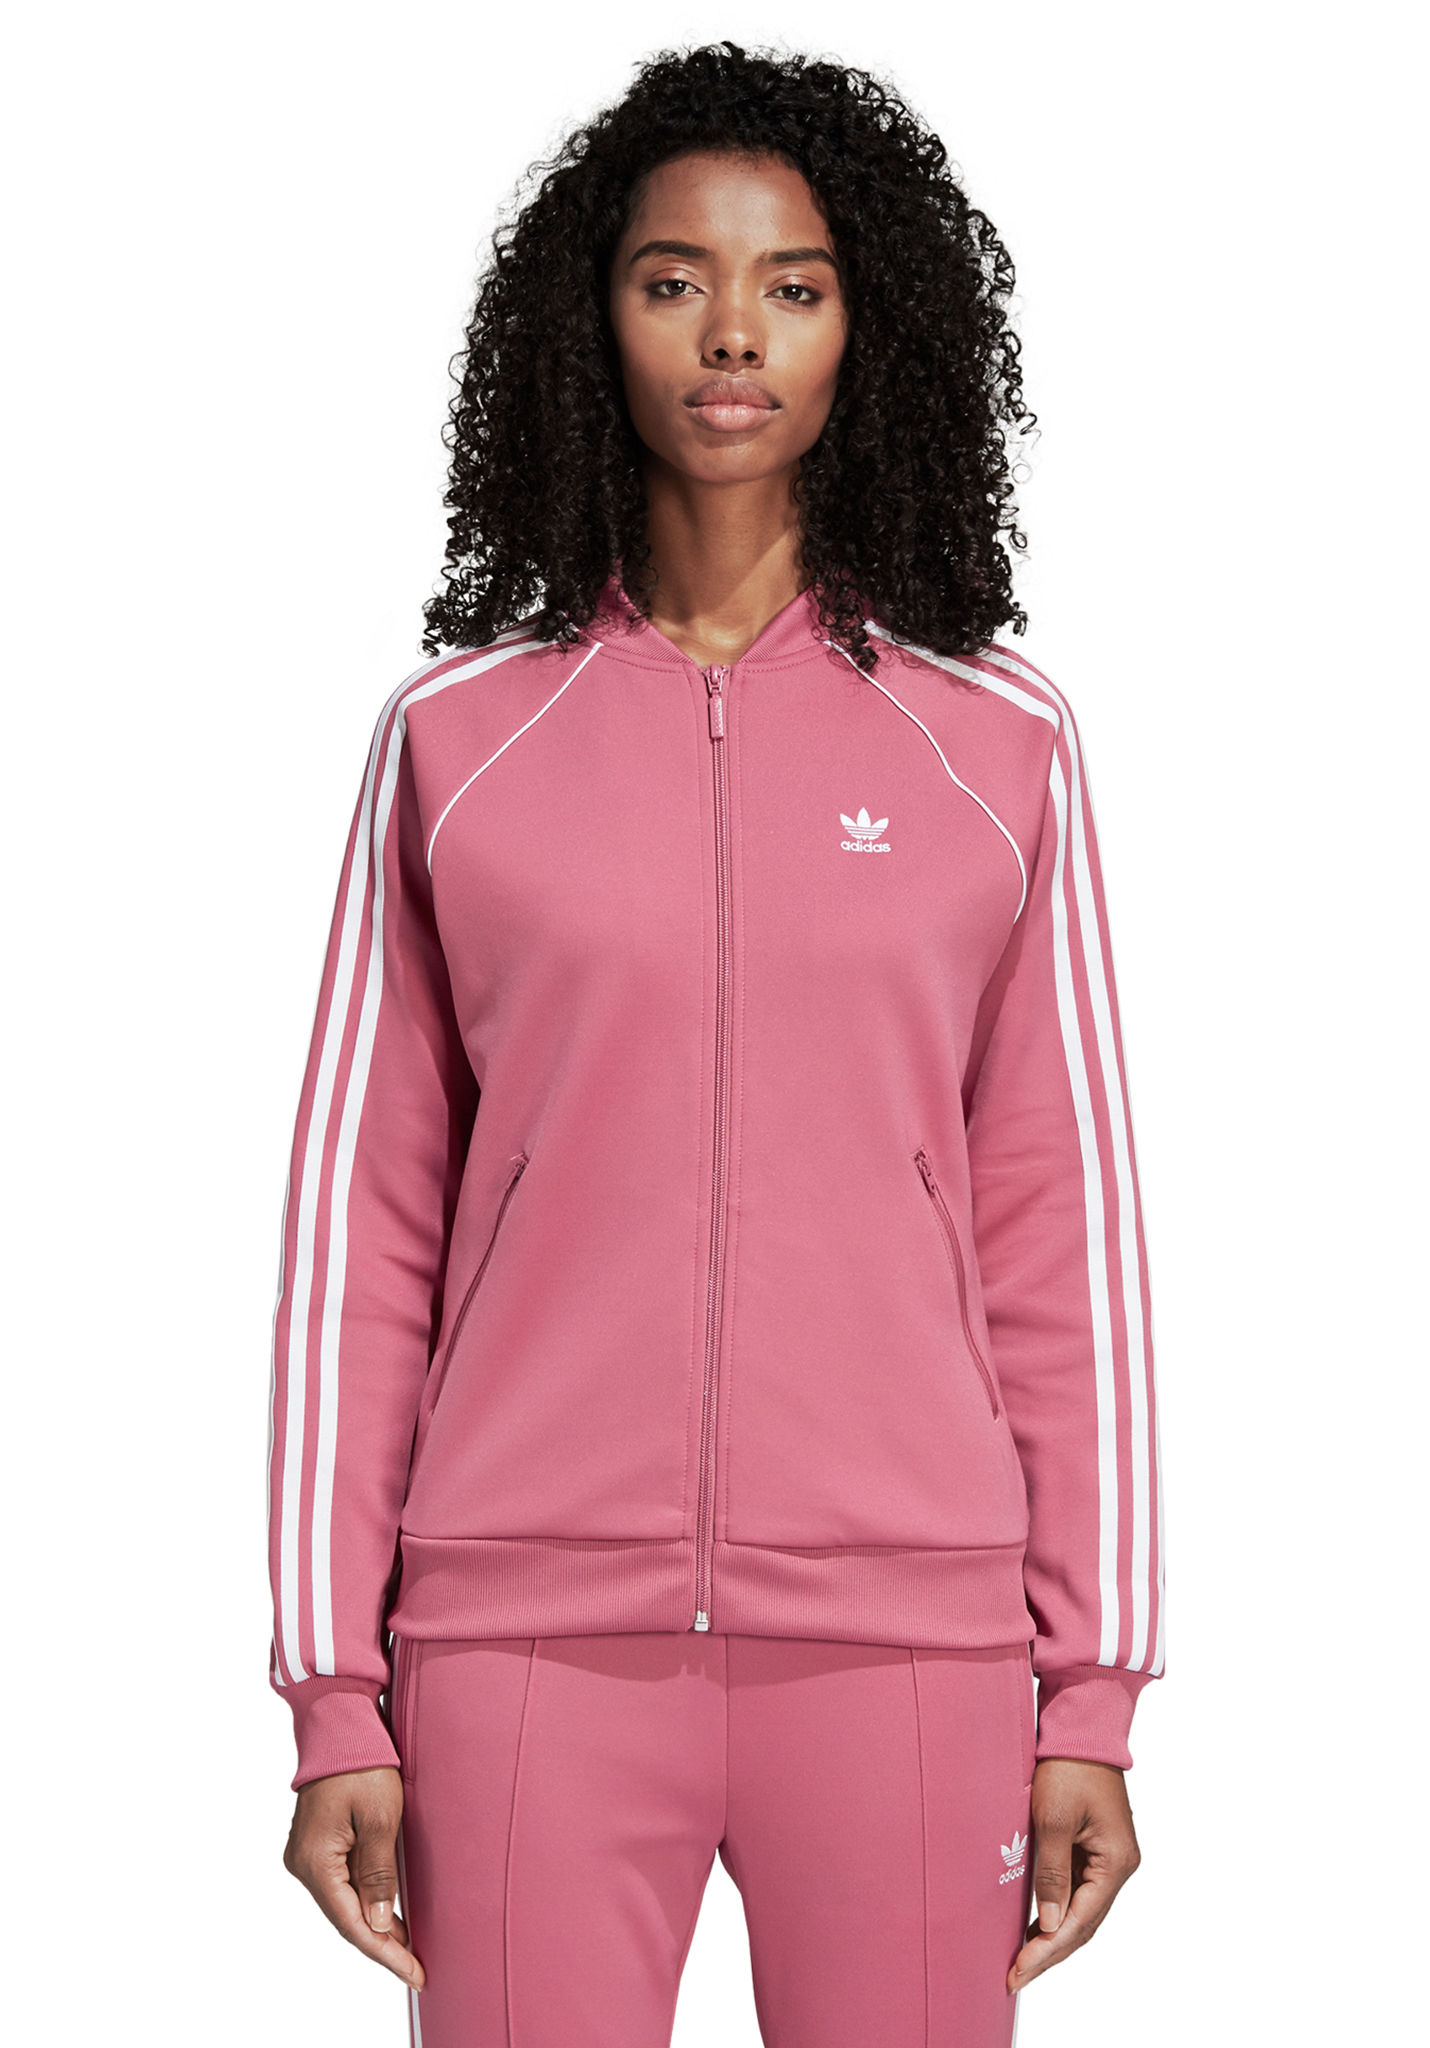 ADIDAS ORIGINALS SST Track Top for Women Pink